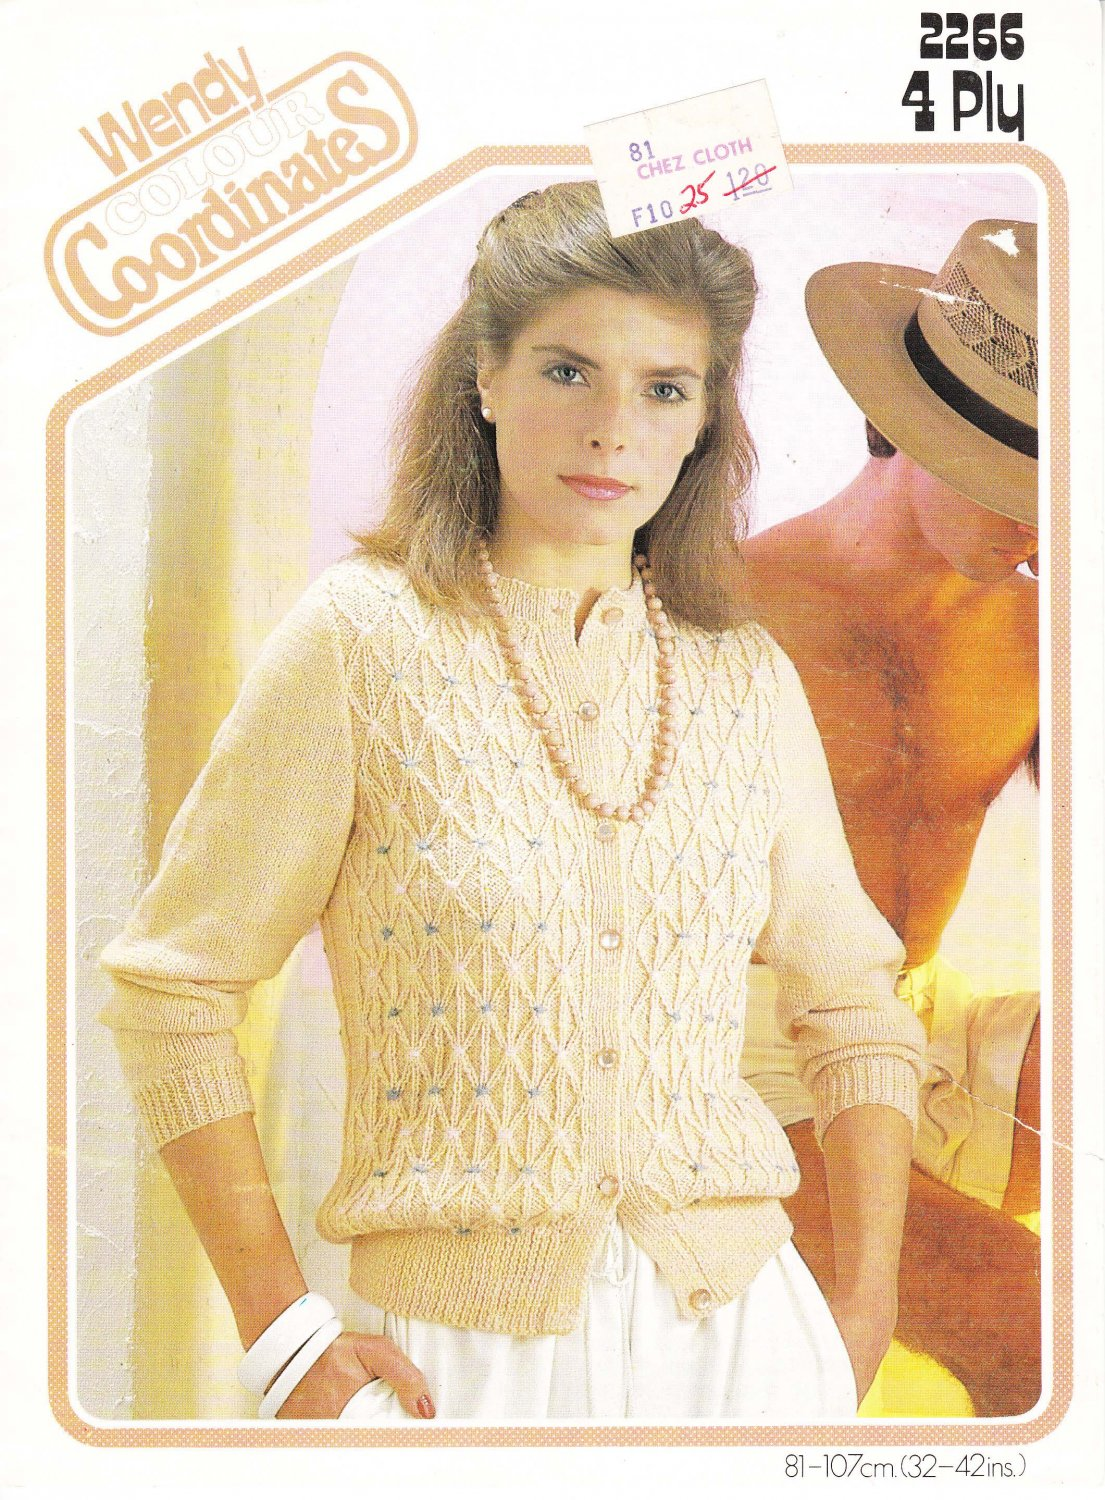 """Wendy Co-Ordinates 4 Ply Knitting Pattern #2266 Lady's Cardigan for sizes 32-42"""""""